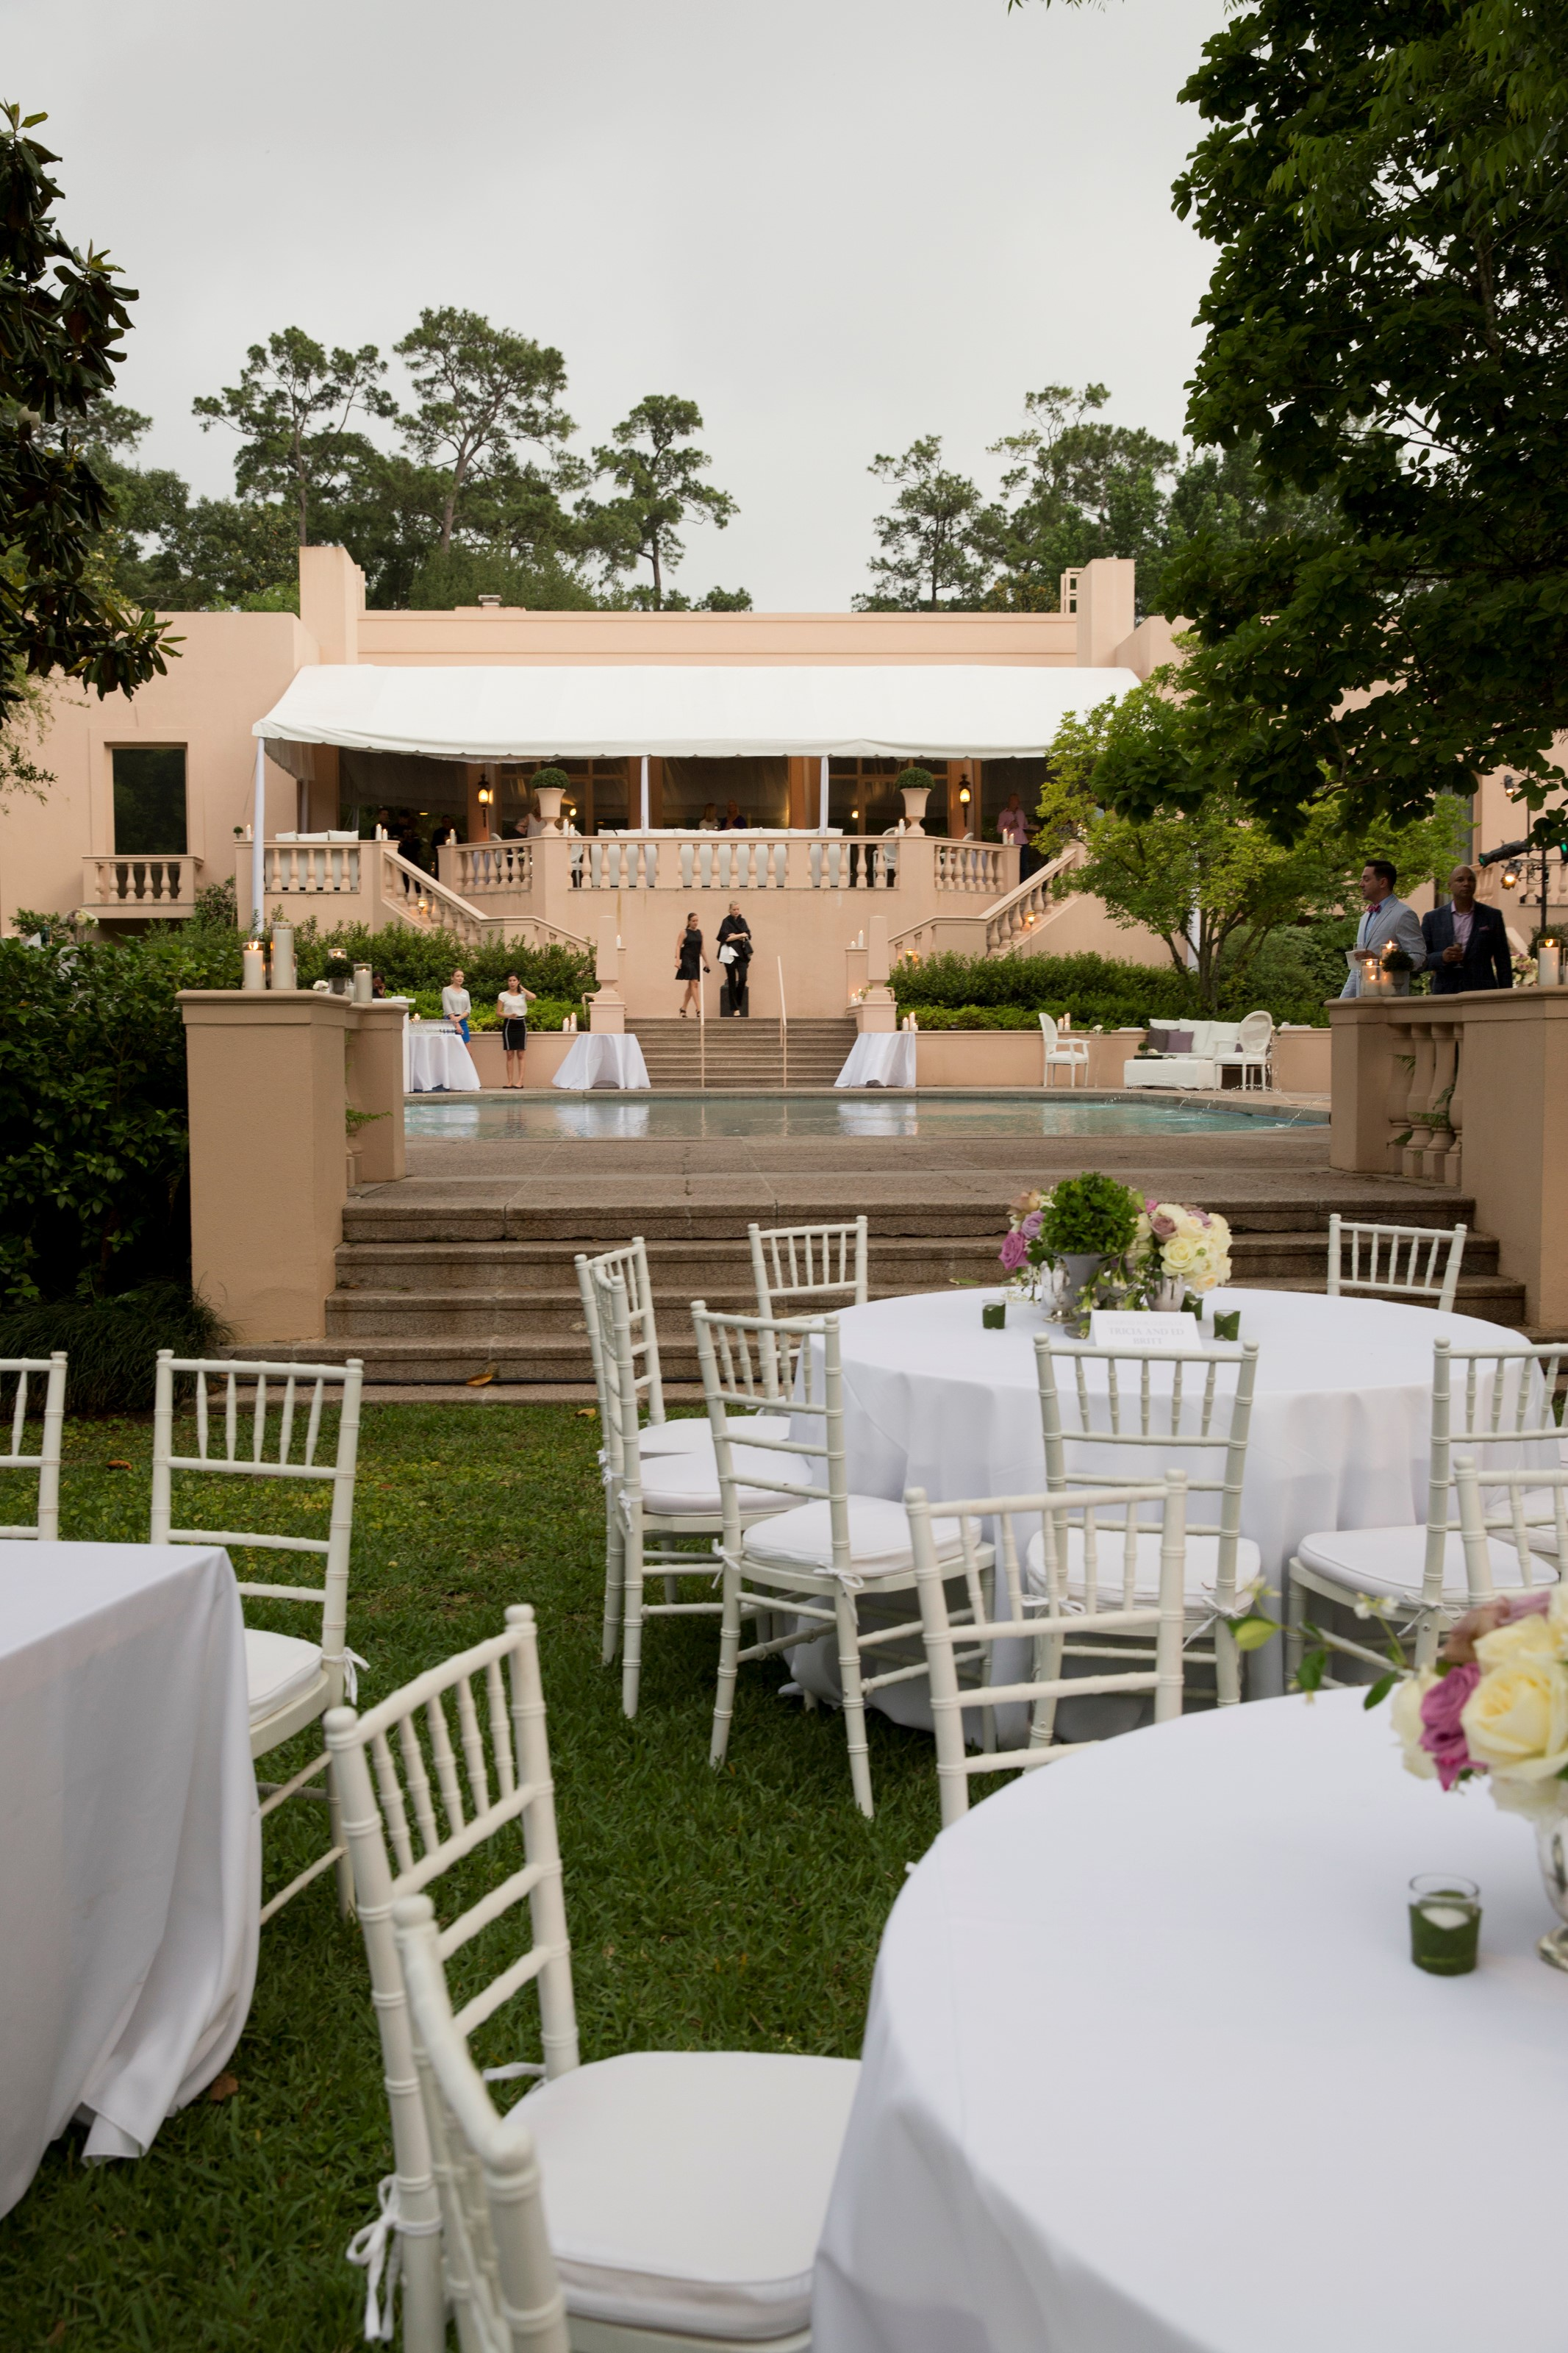 2016 rienzi spring party - tables in front of house